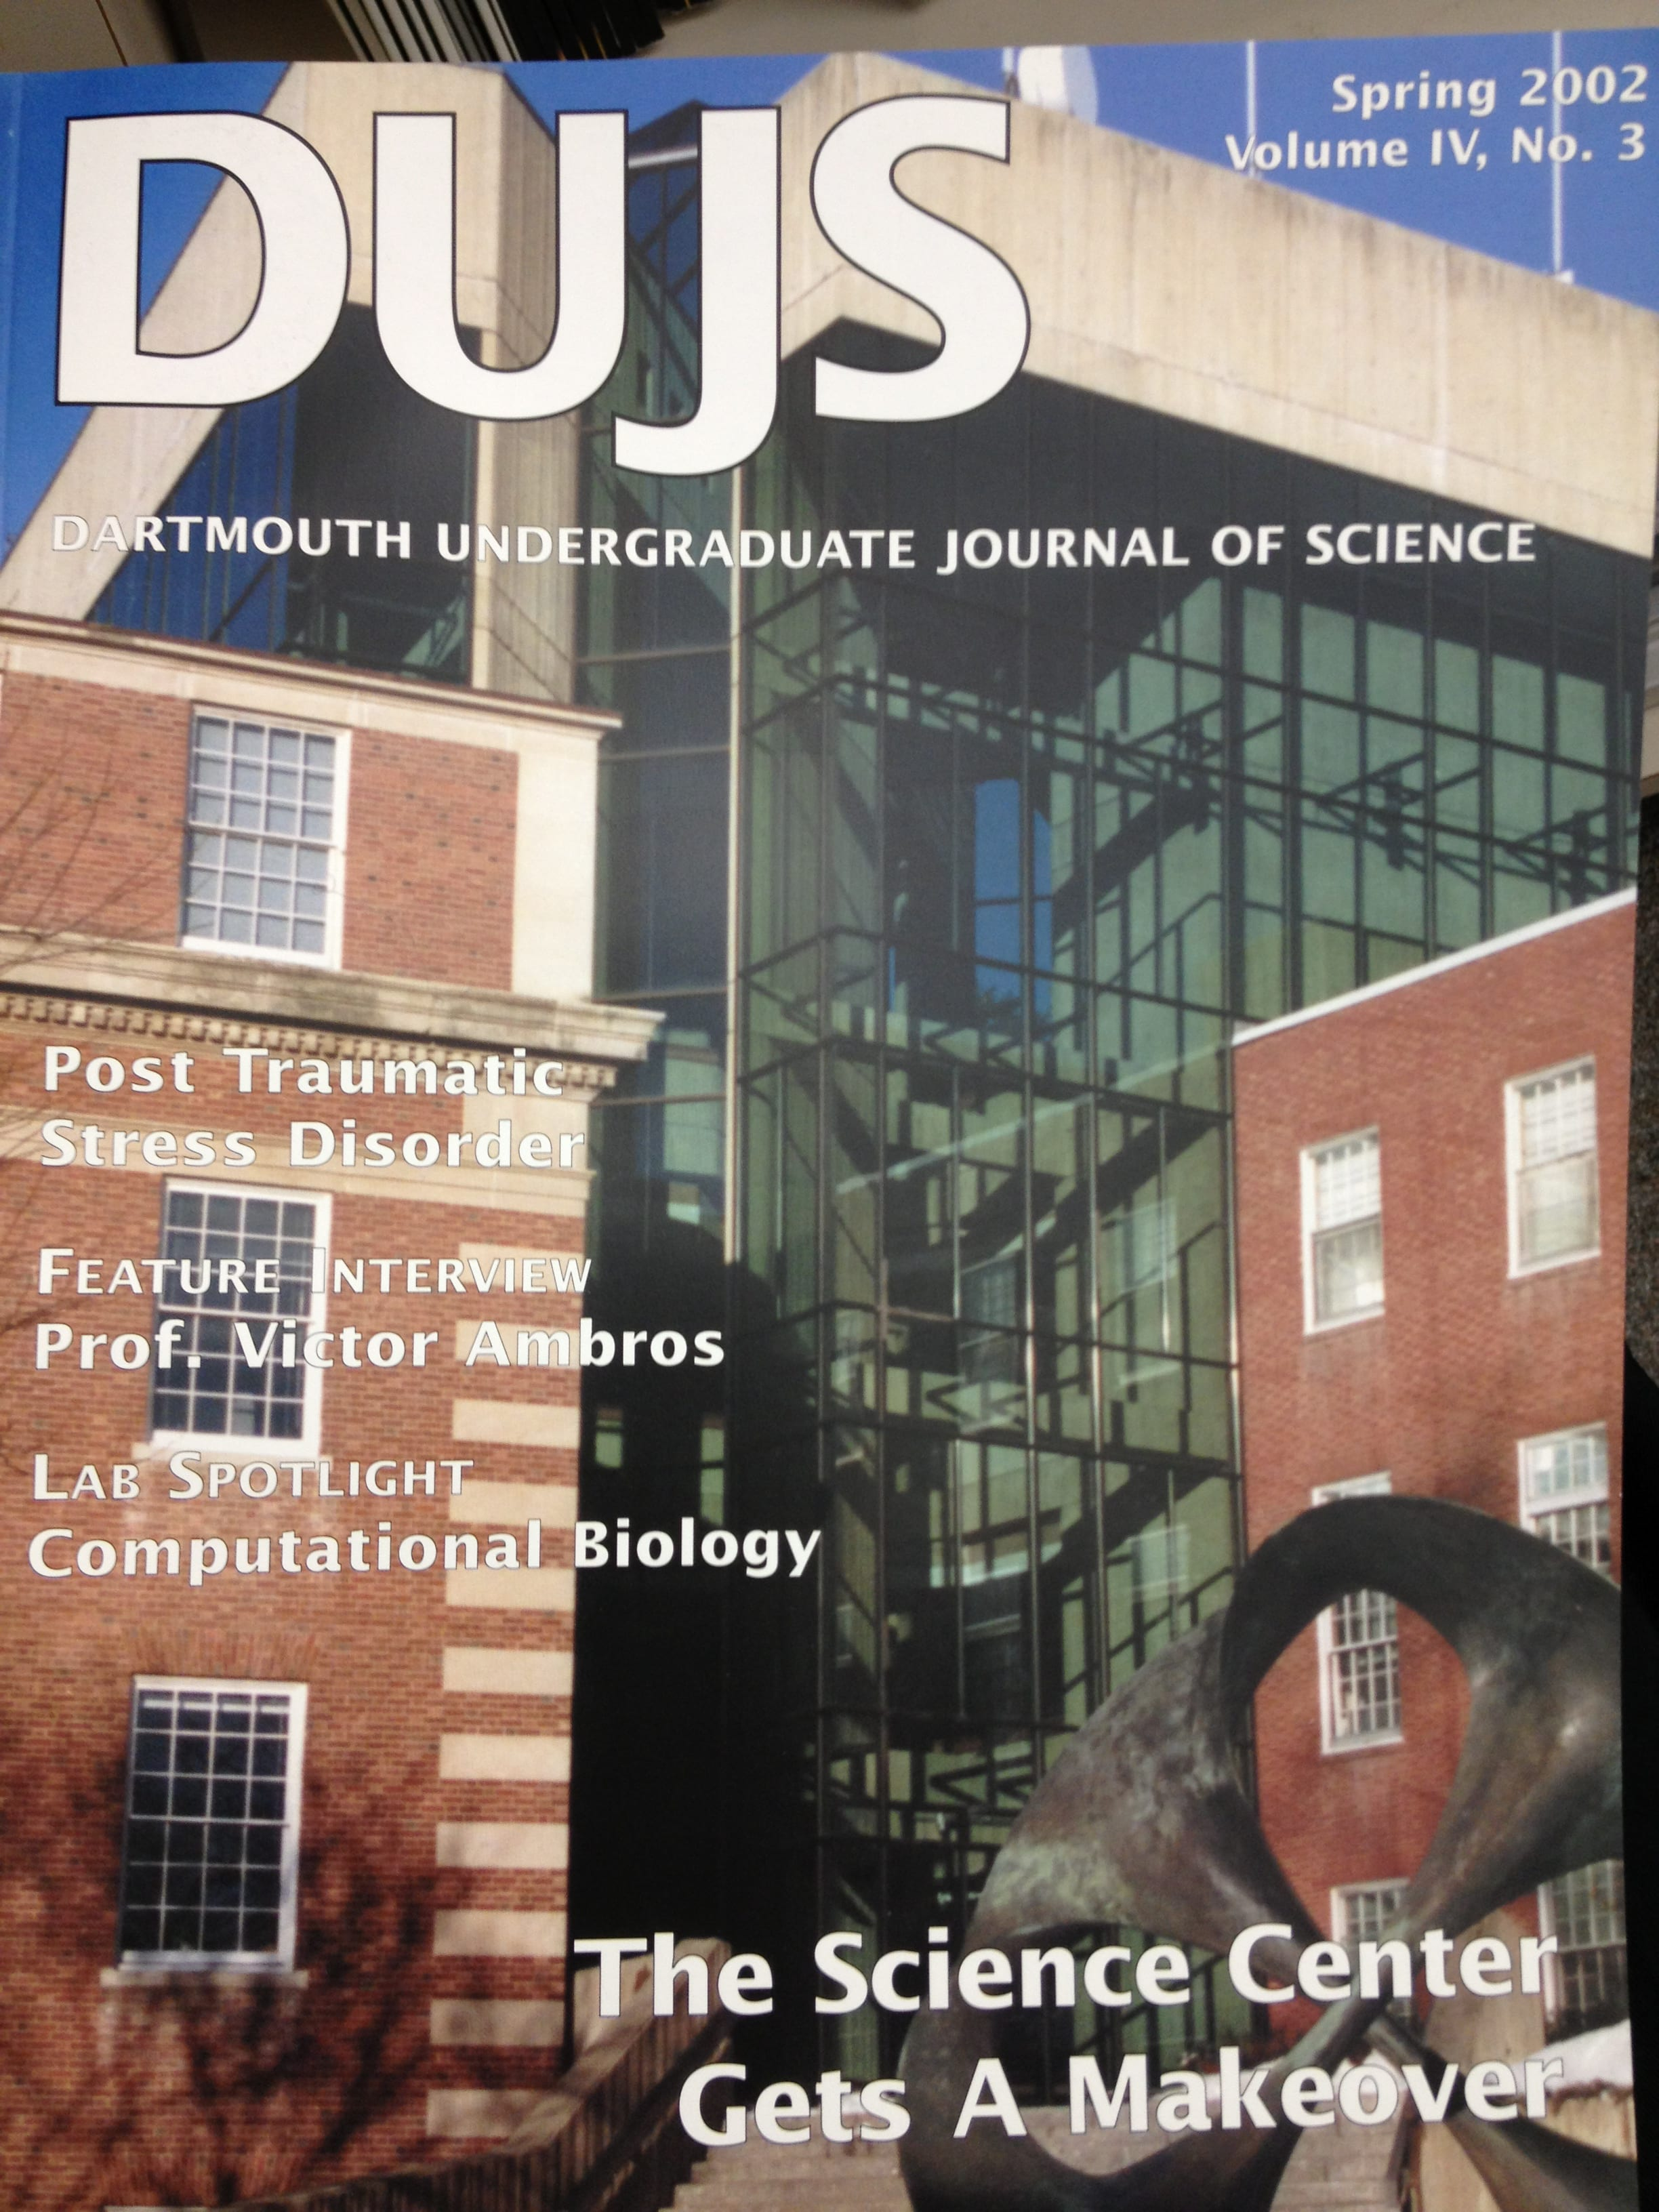 Spring 2002 Cover